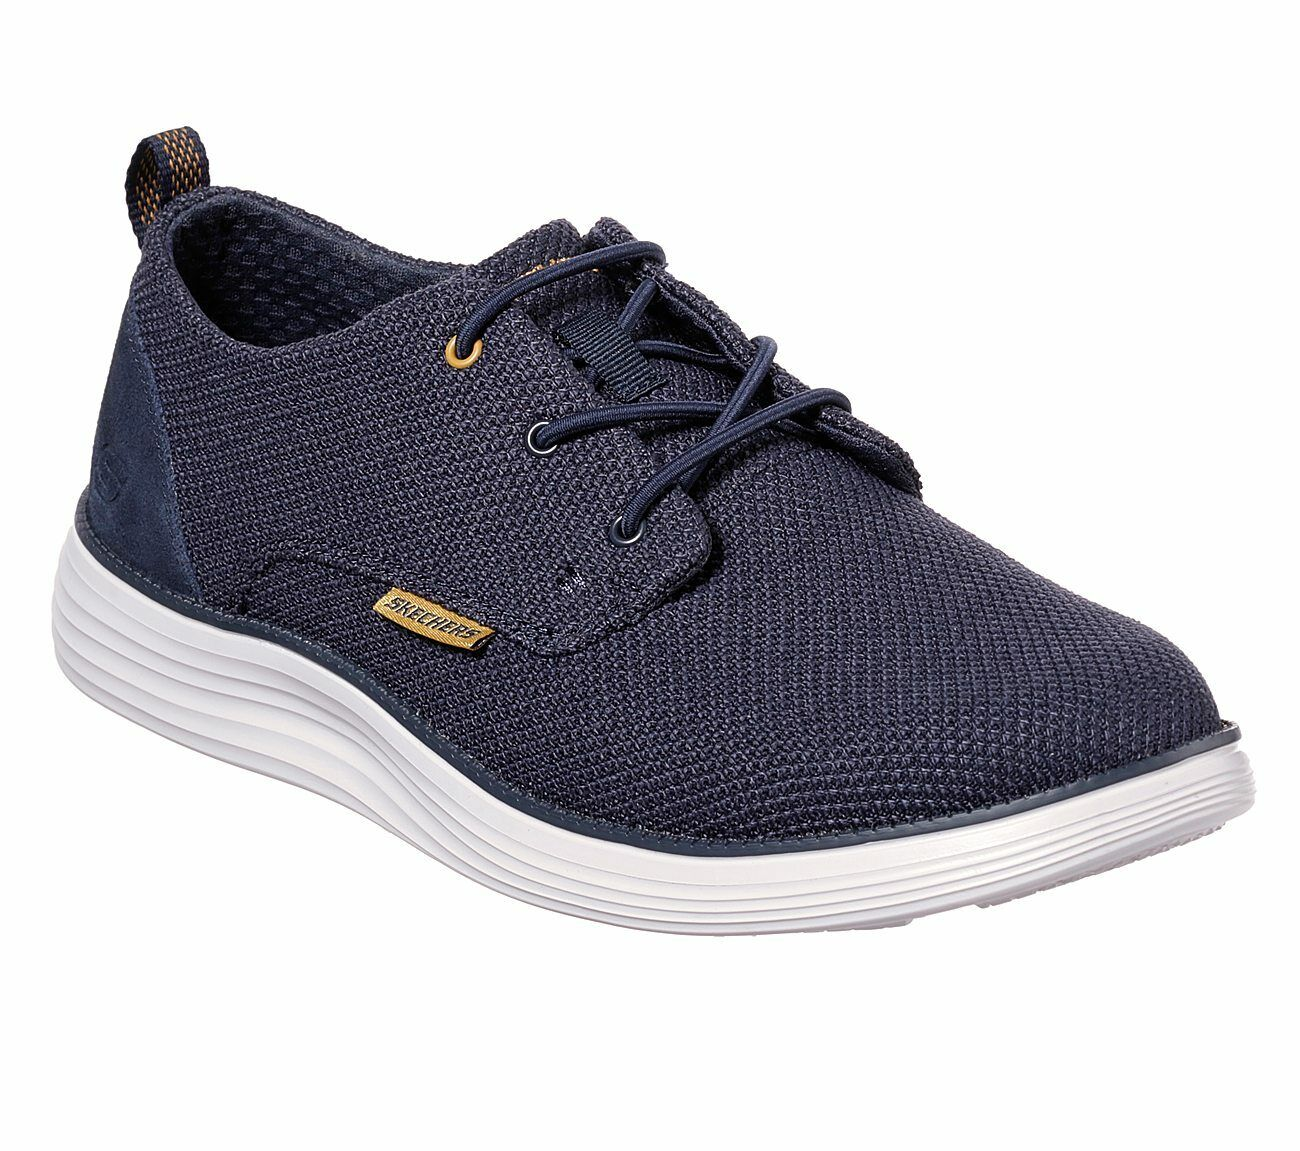 Skechers shoes Navy Men Memory Foam Casual Comfort Soft Woven Mesh Oxford 65900